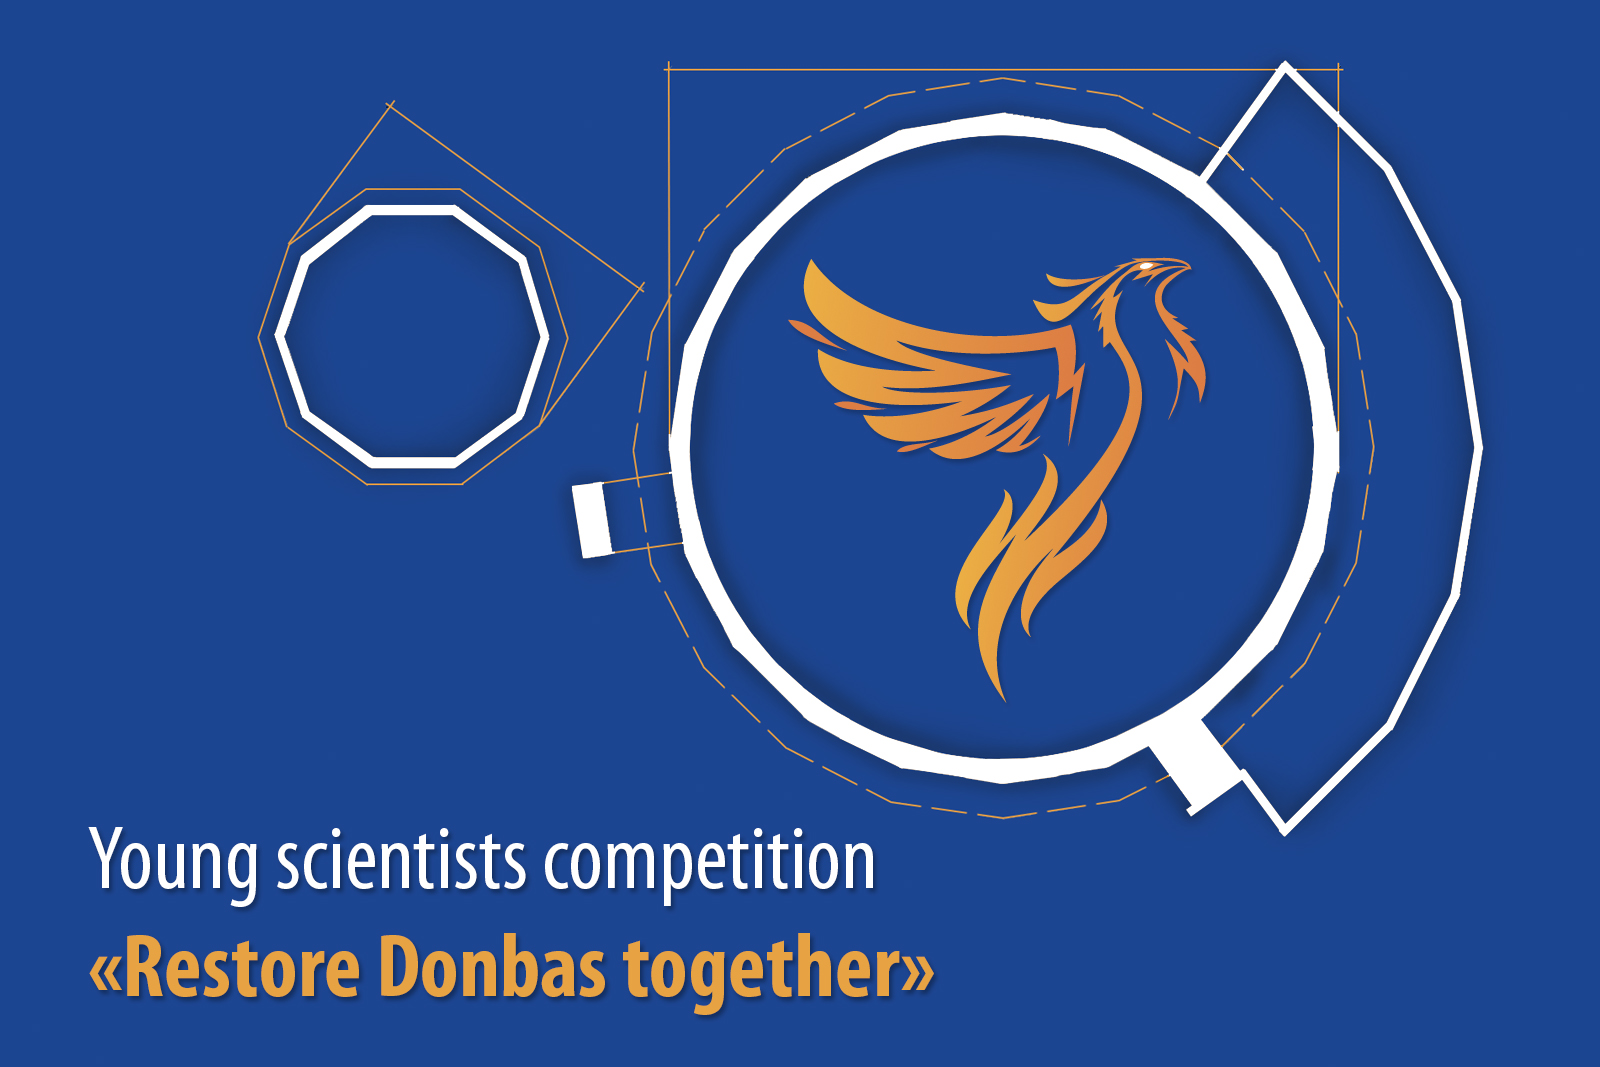 «Restoring Donbas» has launched the competition among the young architects and designers